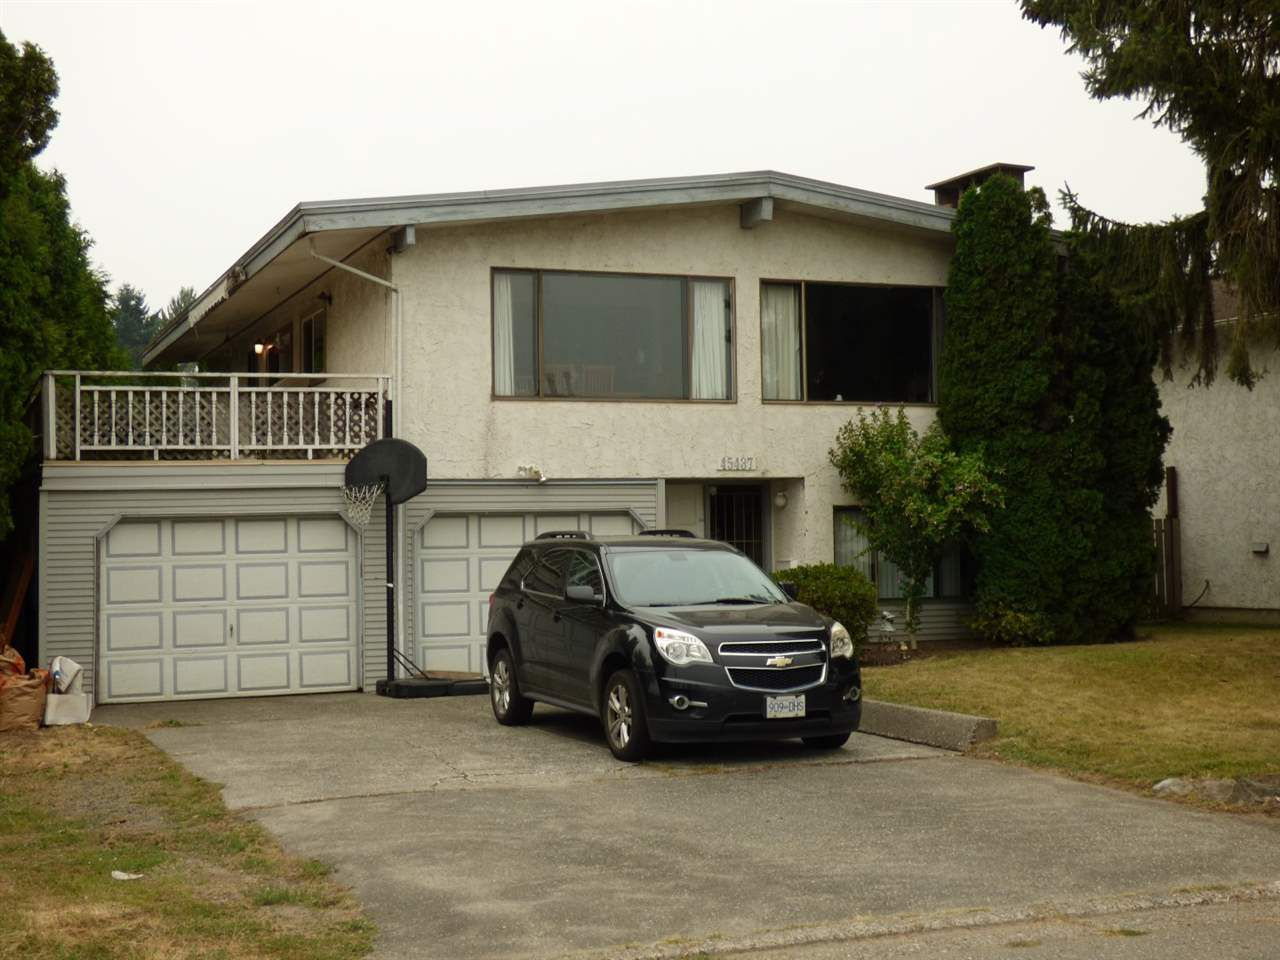 Main Photo: 45437 REECE Avenue in Chilliwack: Chilliwack N Yale-Well House for sale : MLS®# R2202995